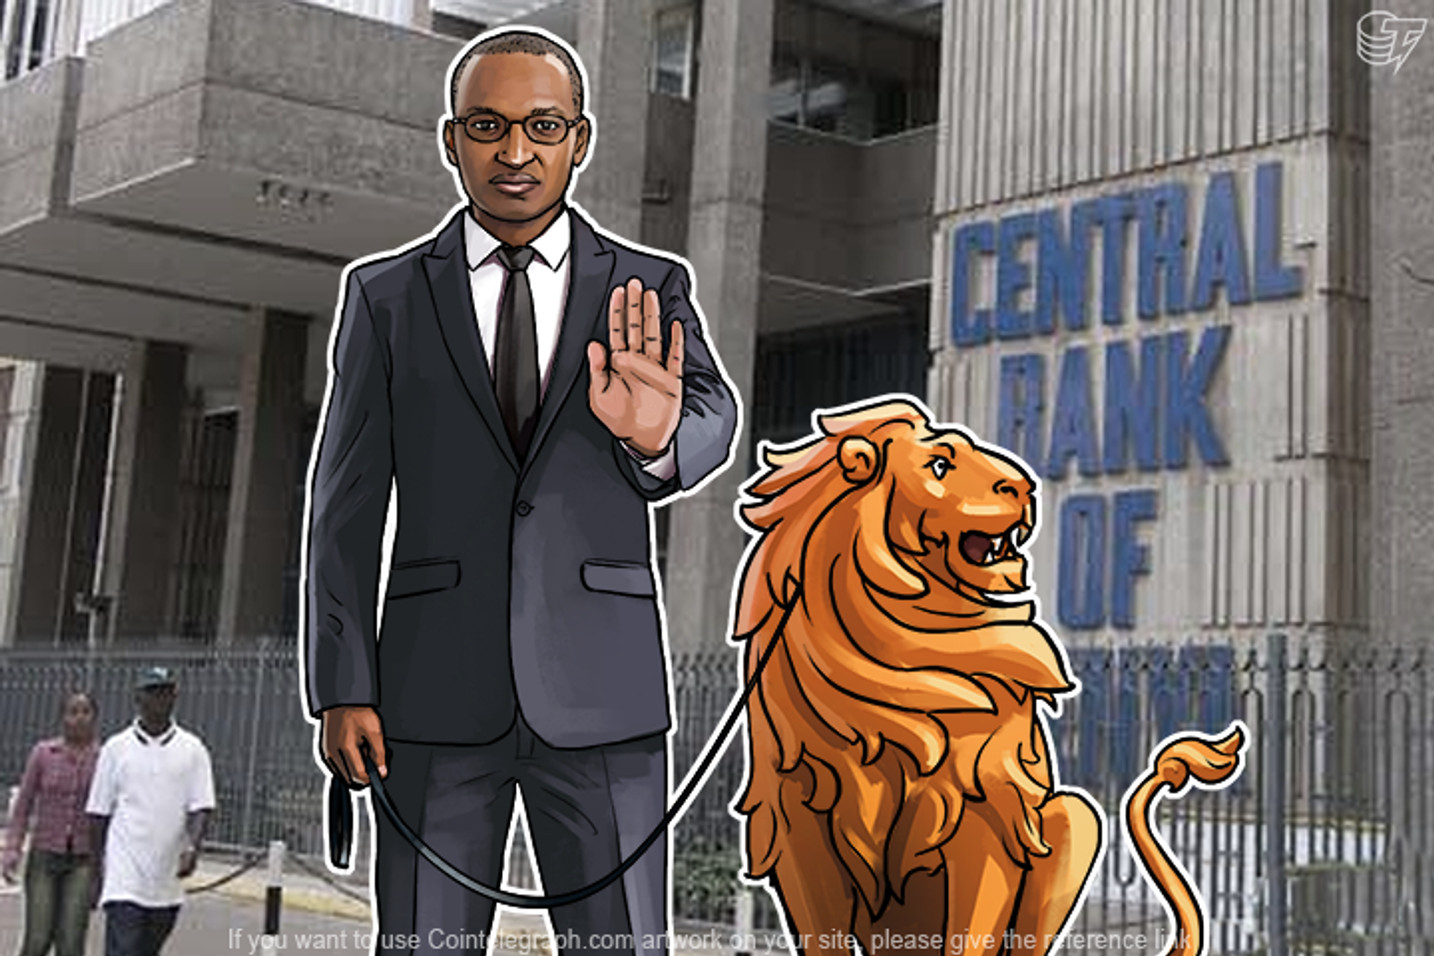 Kenyan Central Bank Warns that BTC is Unregulated. No Mention of Inflation